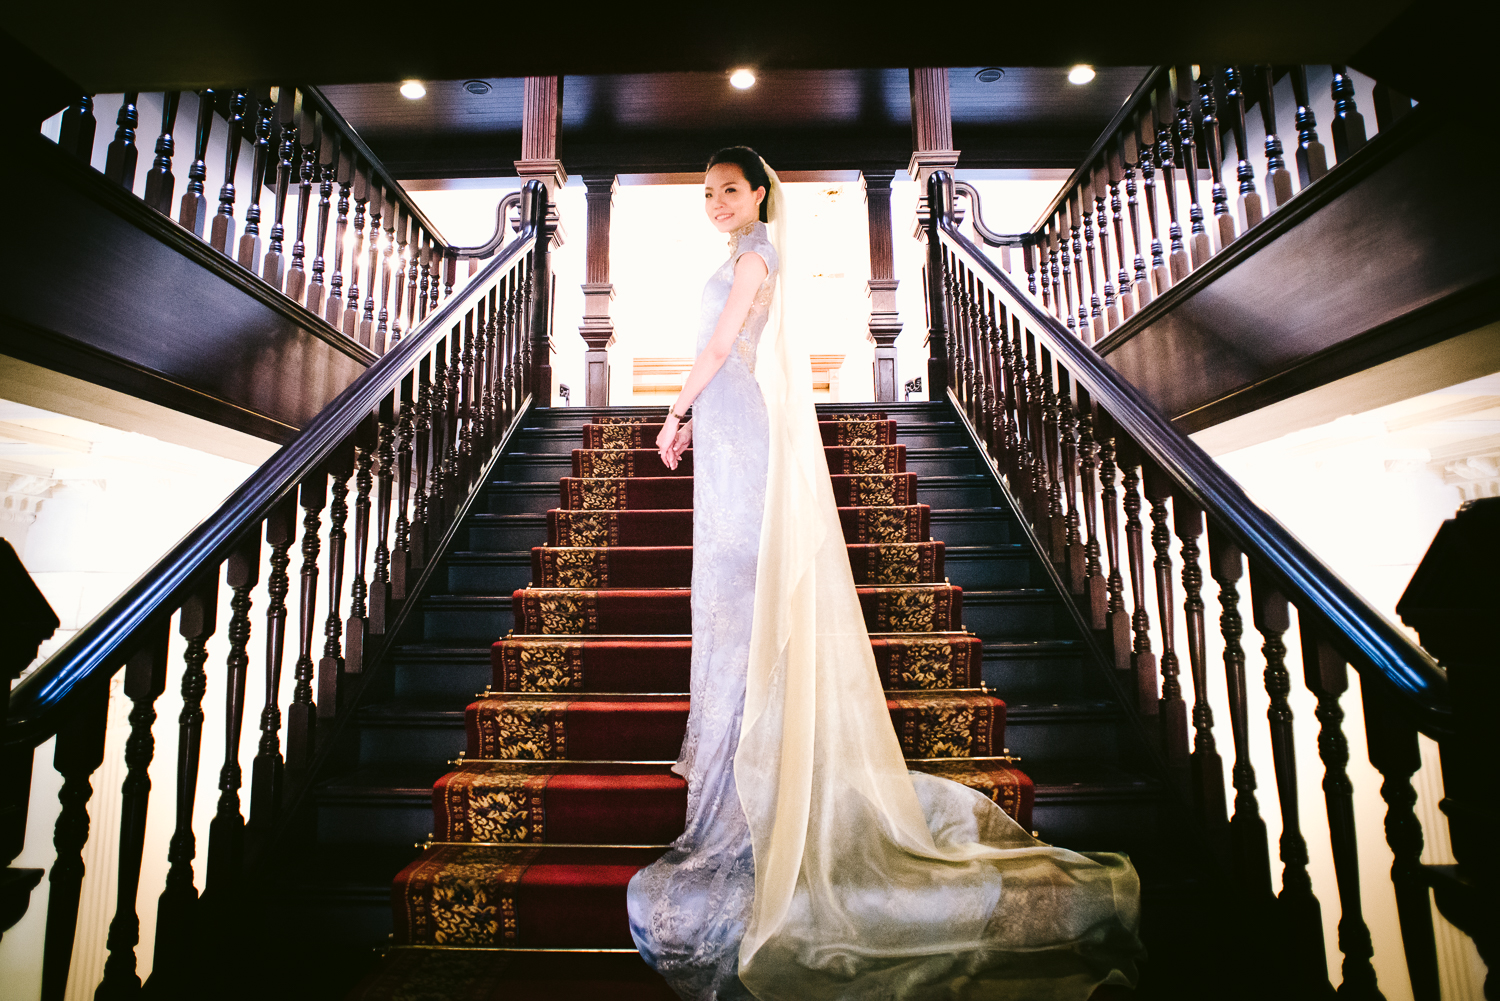 stairscase shot of the bride and her gown